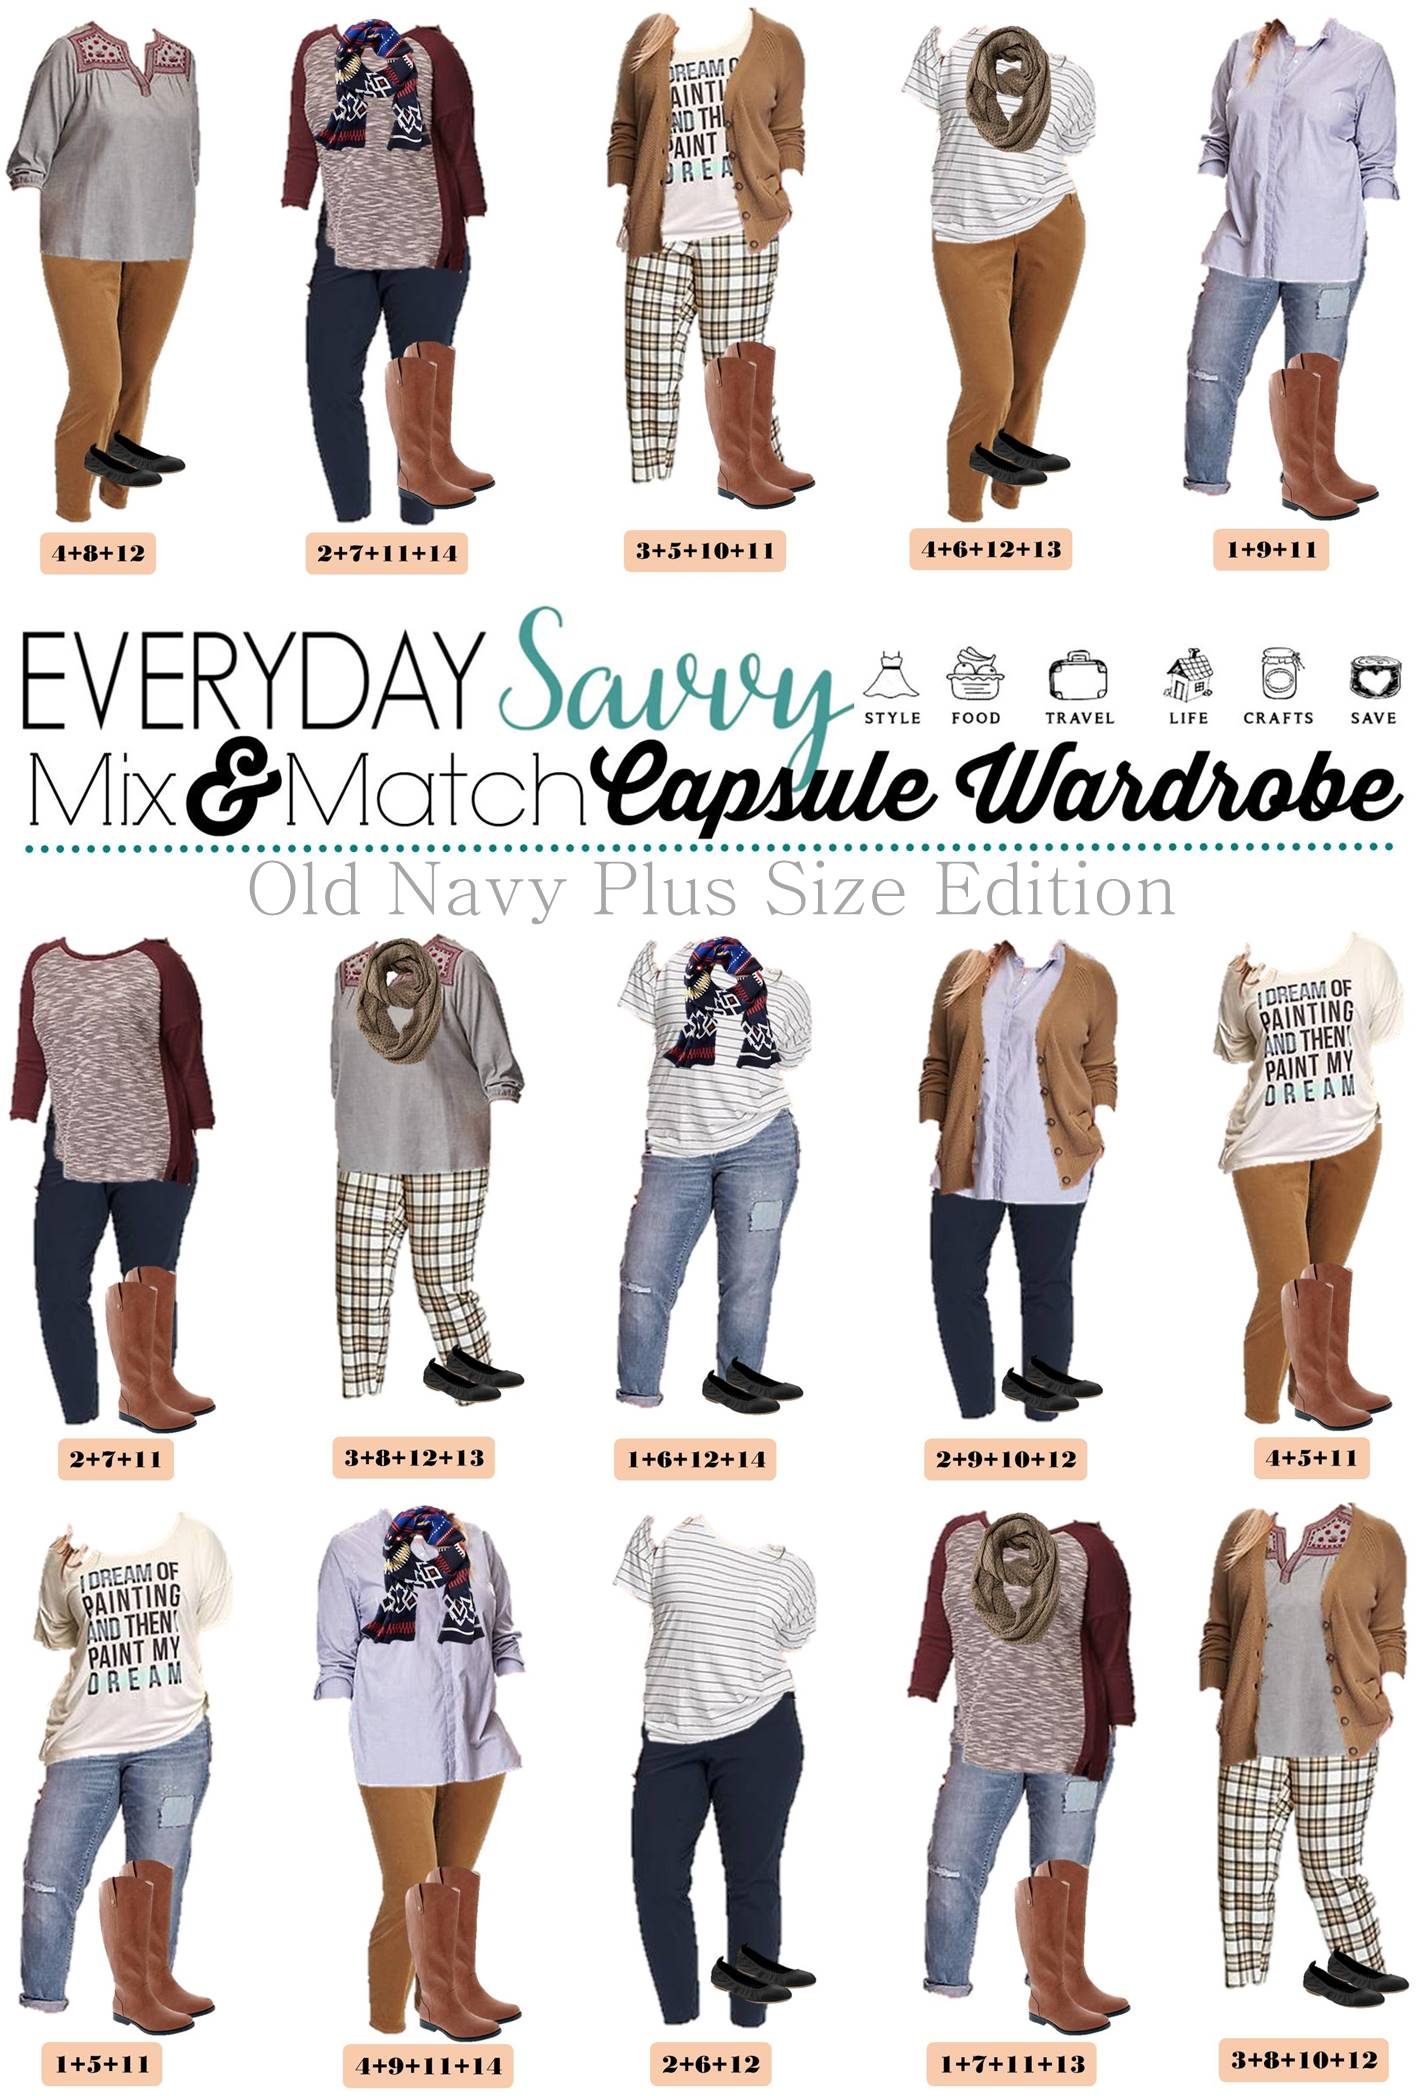 Old Navy Plus Size Capsule Wardrobe Fall